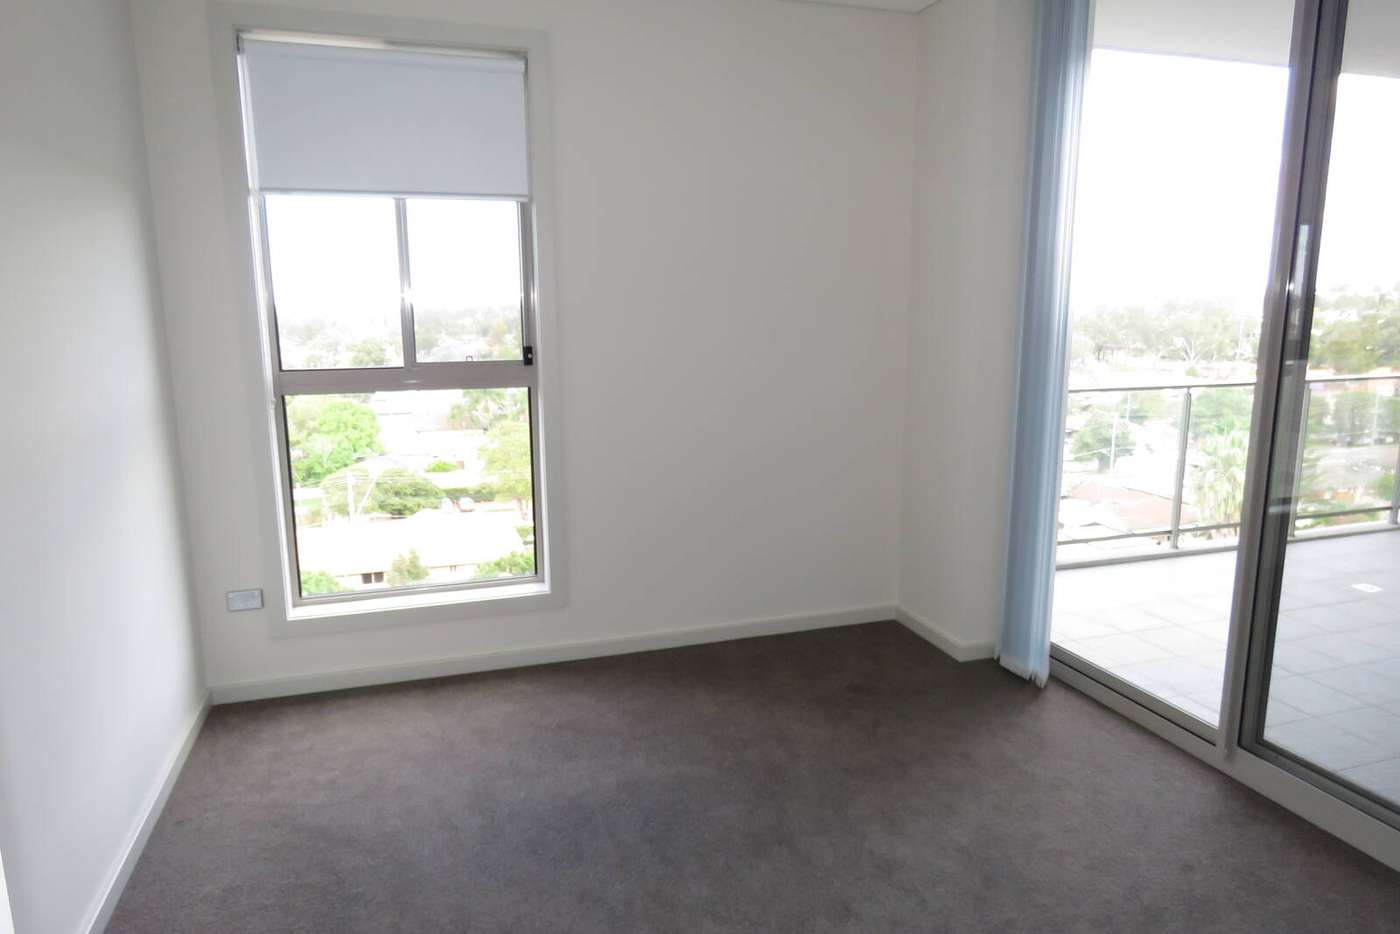 Seventh view of Homely unit listing, A702/48-56 Derby Street, Kingswood NSW 2747